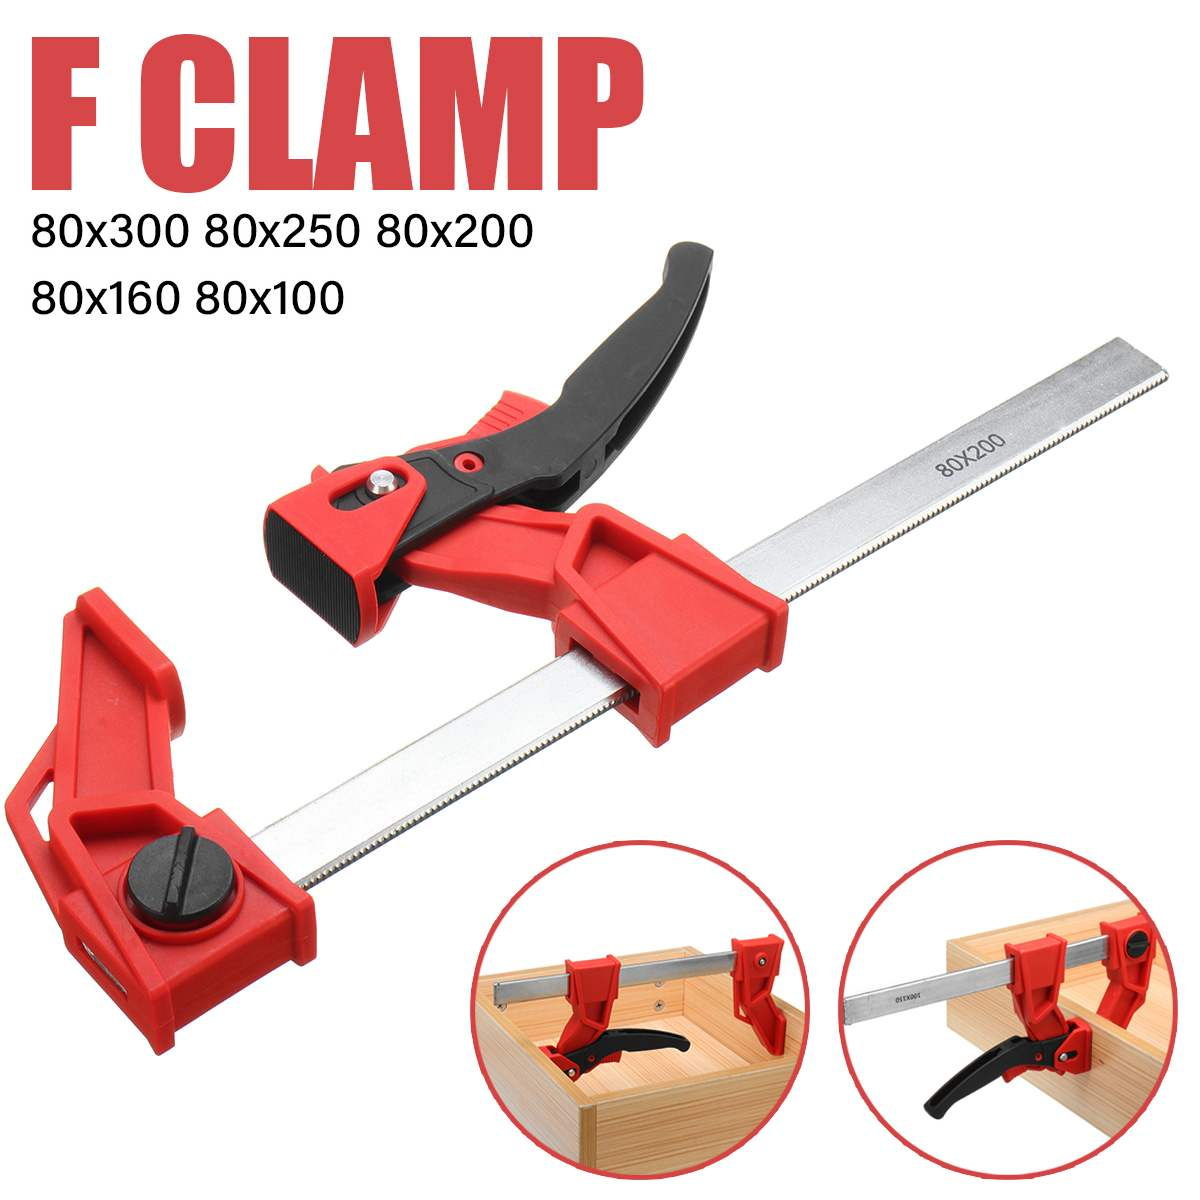 80mm F-Clamp Heavy Bar Quick Ratchet Release Parallel Clamp Clip Clamps for Woodworking Wood Carpenter Clamps Long Cramp Clamps80mm F-Clamp Heavy Bar Quick Ratchet Release Parallel Clamp Clip Clamps for Woodworking Wood Carpenter Clamps Long Cramp Clamps